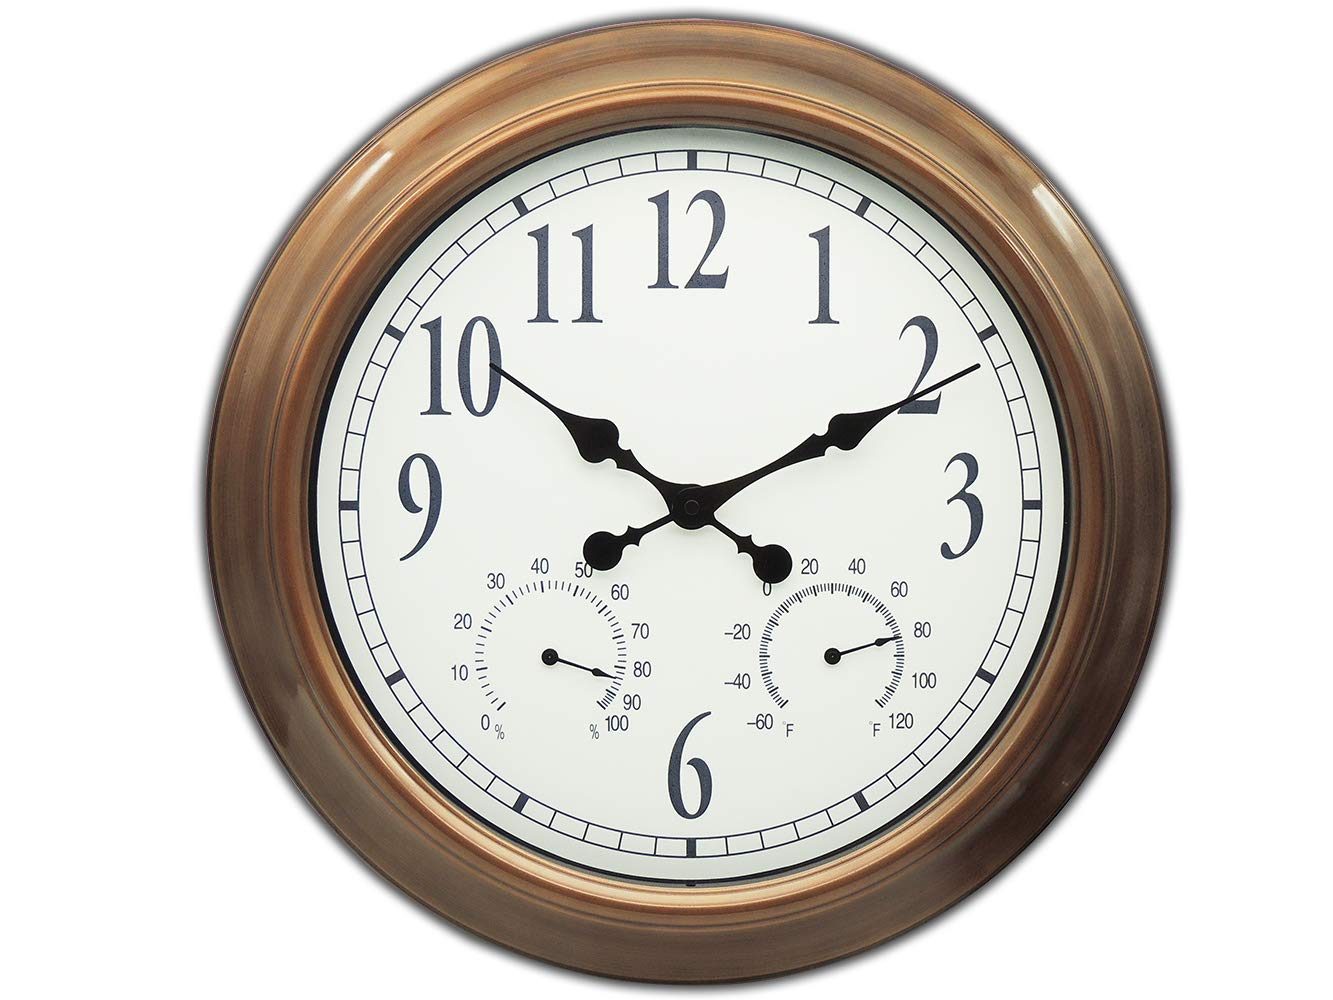 Ing-Never Stop Outdoor Clocks, Large Outdoor Clock Waterproof with Temperature and Humidity Silent Movement - 18inch